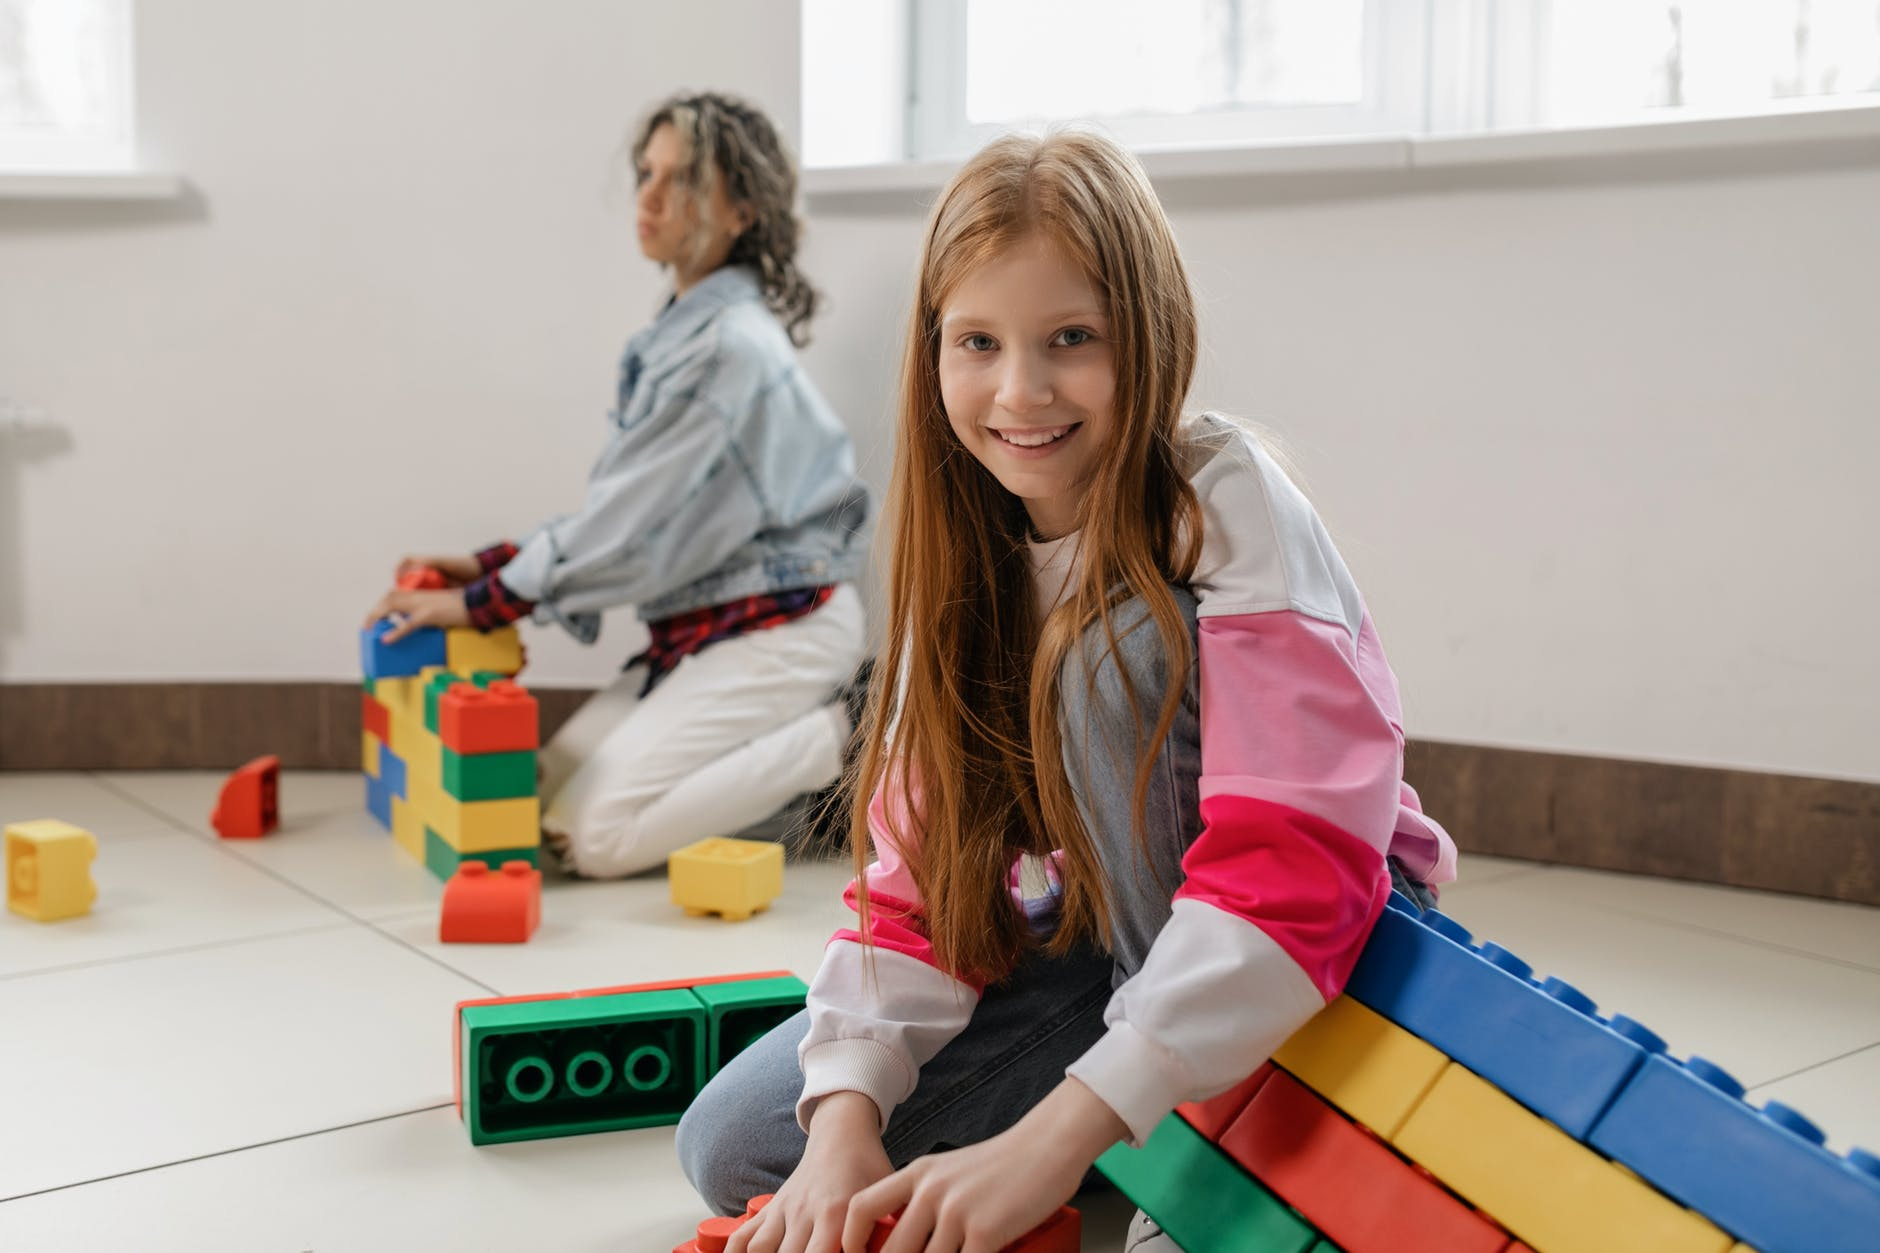 children playing with giant lego blocks